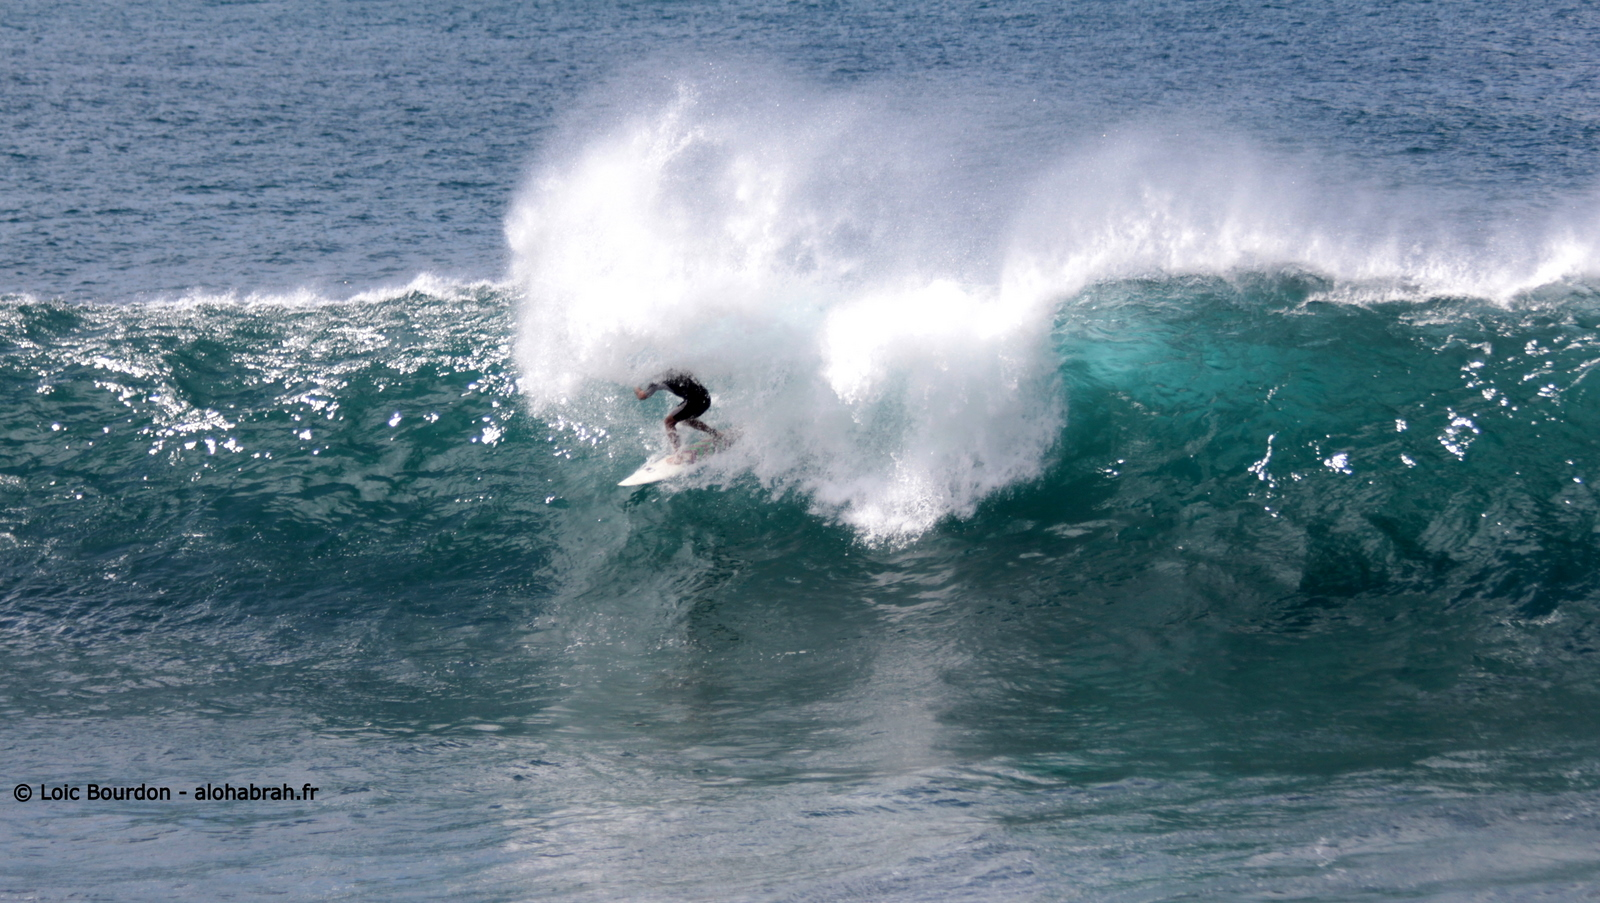 Drop under the lip, small Waimea © Loic Bourdon - alohabrah.fr